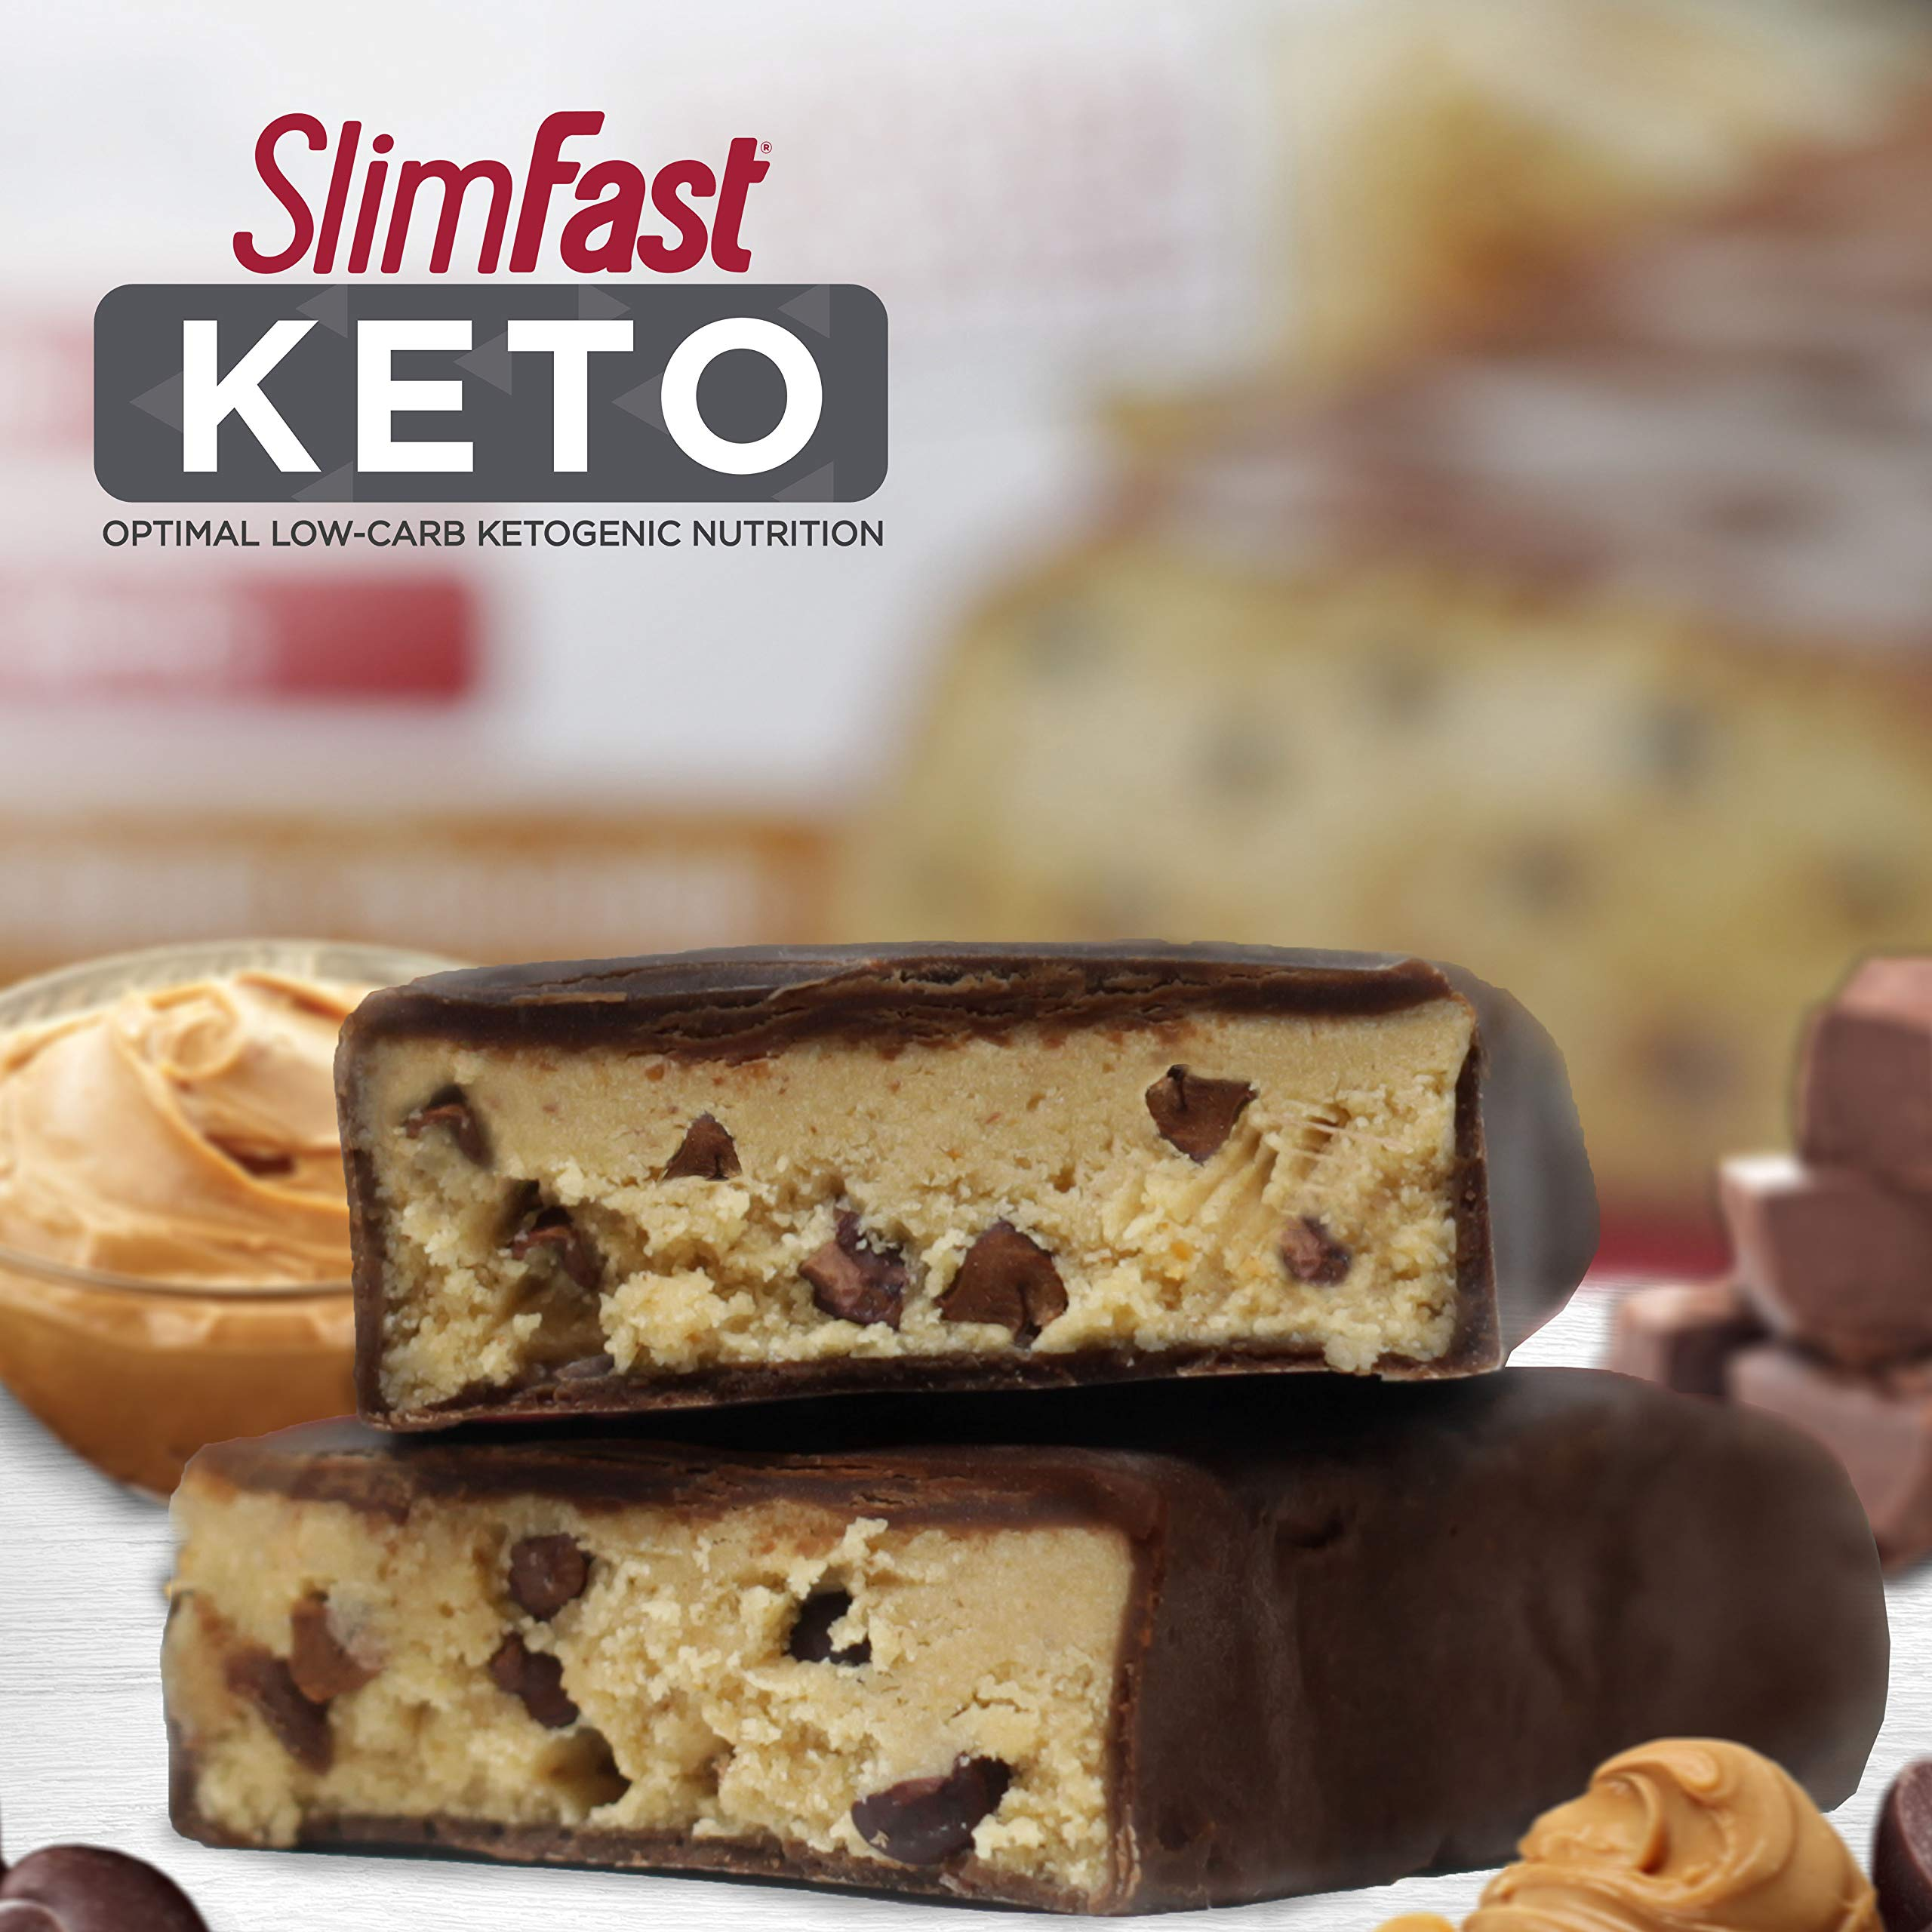 SlimFast 4 Piece Keto Meal Replacement Bar Peanut Butter Chocolate, 2.7 Pound by SlimFast (Image #5)